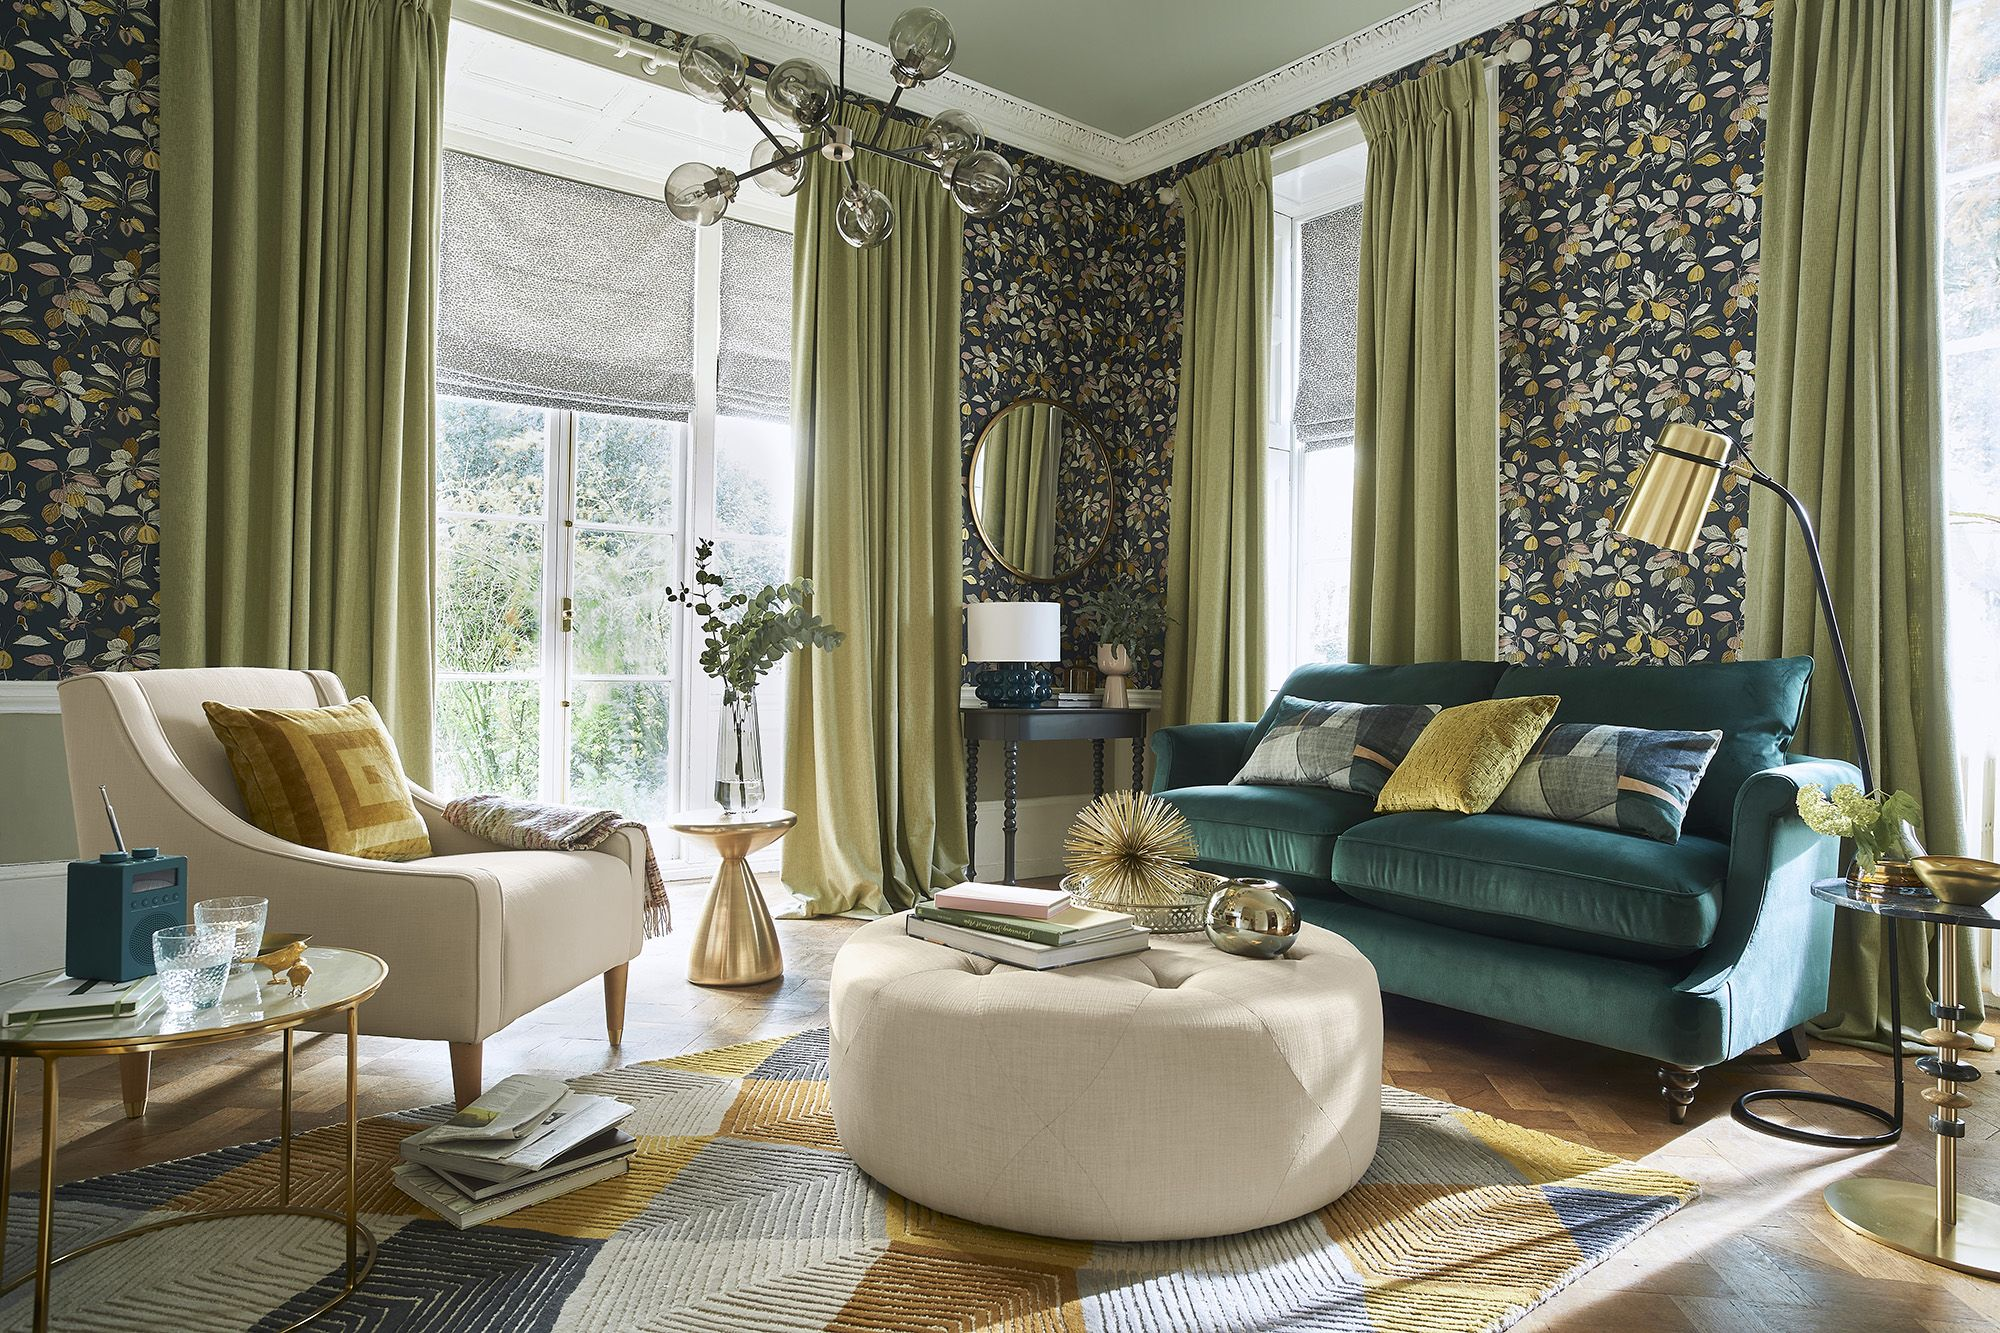 Modern and sophisticated interior design trends. 10 Spring Summer Interior Trends For 2021 Decorating Ideas